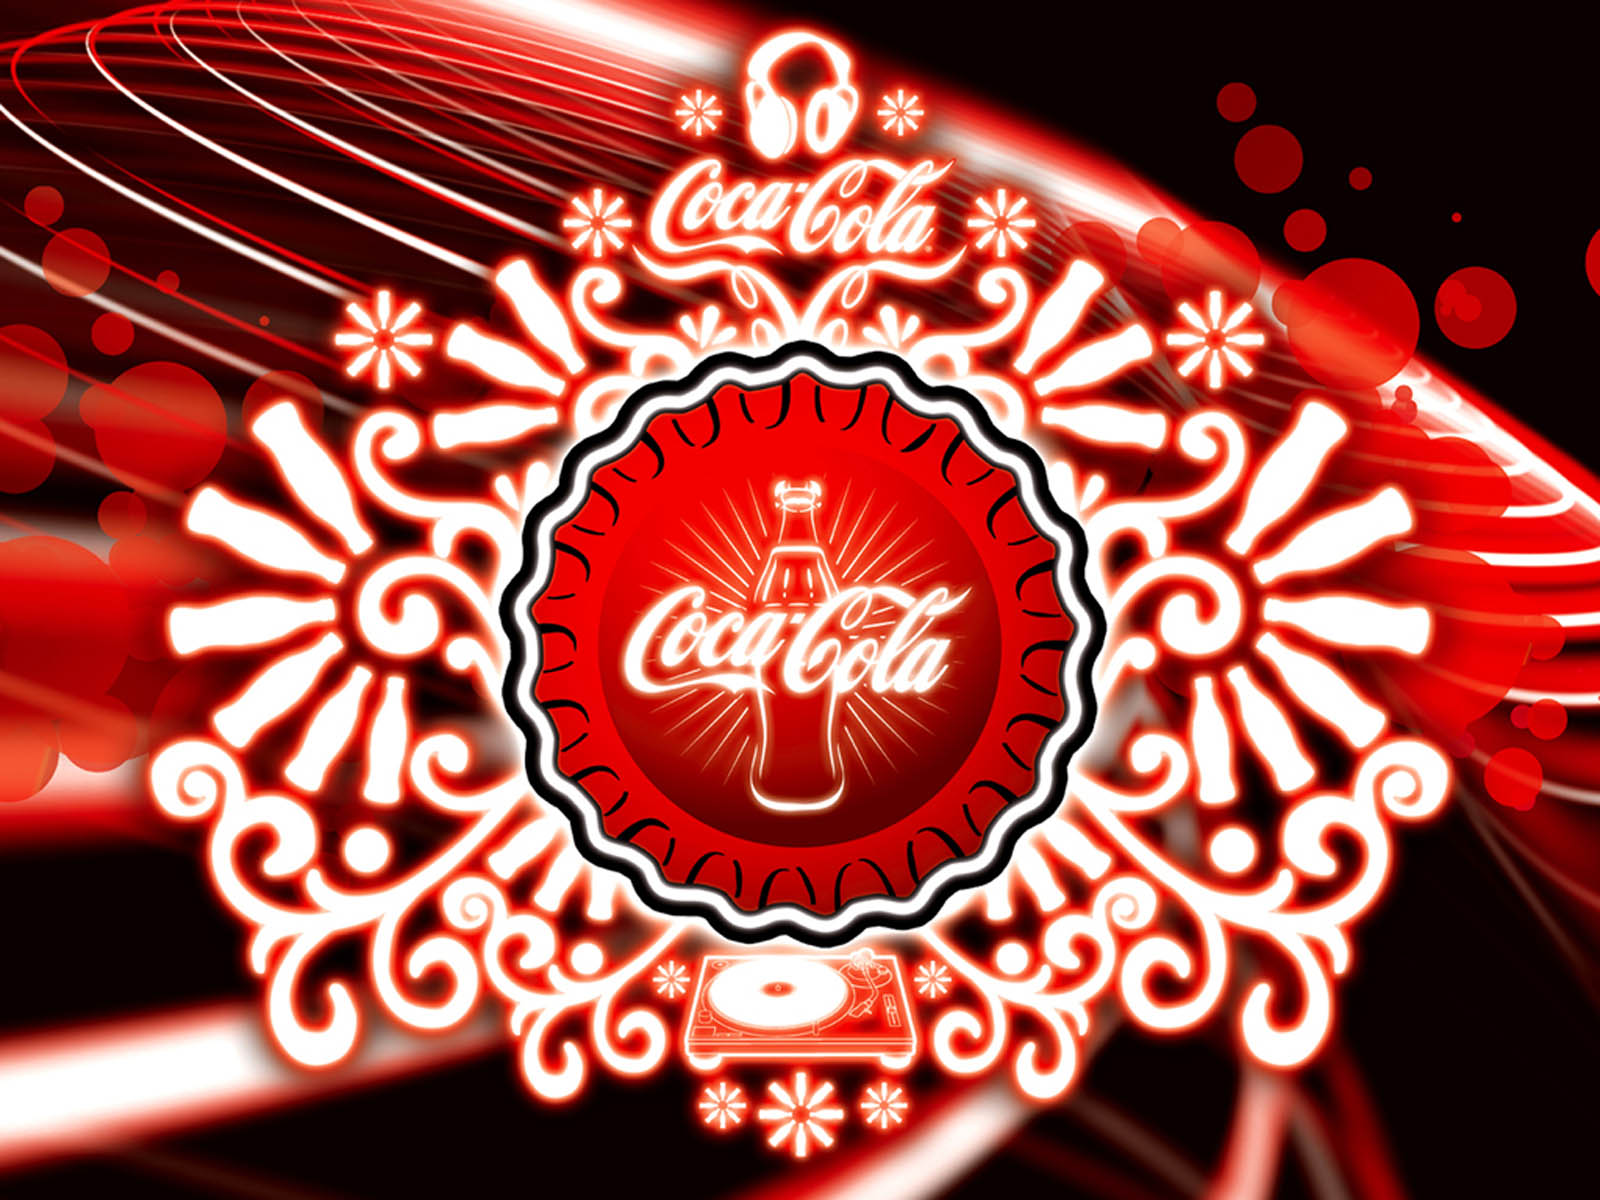 Coca Cola art Wallpapers